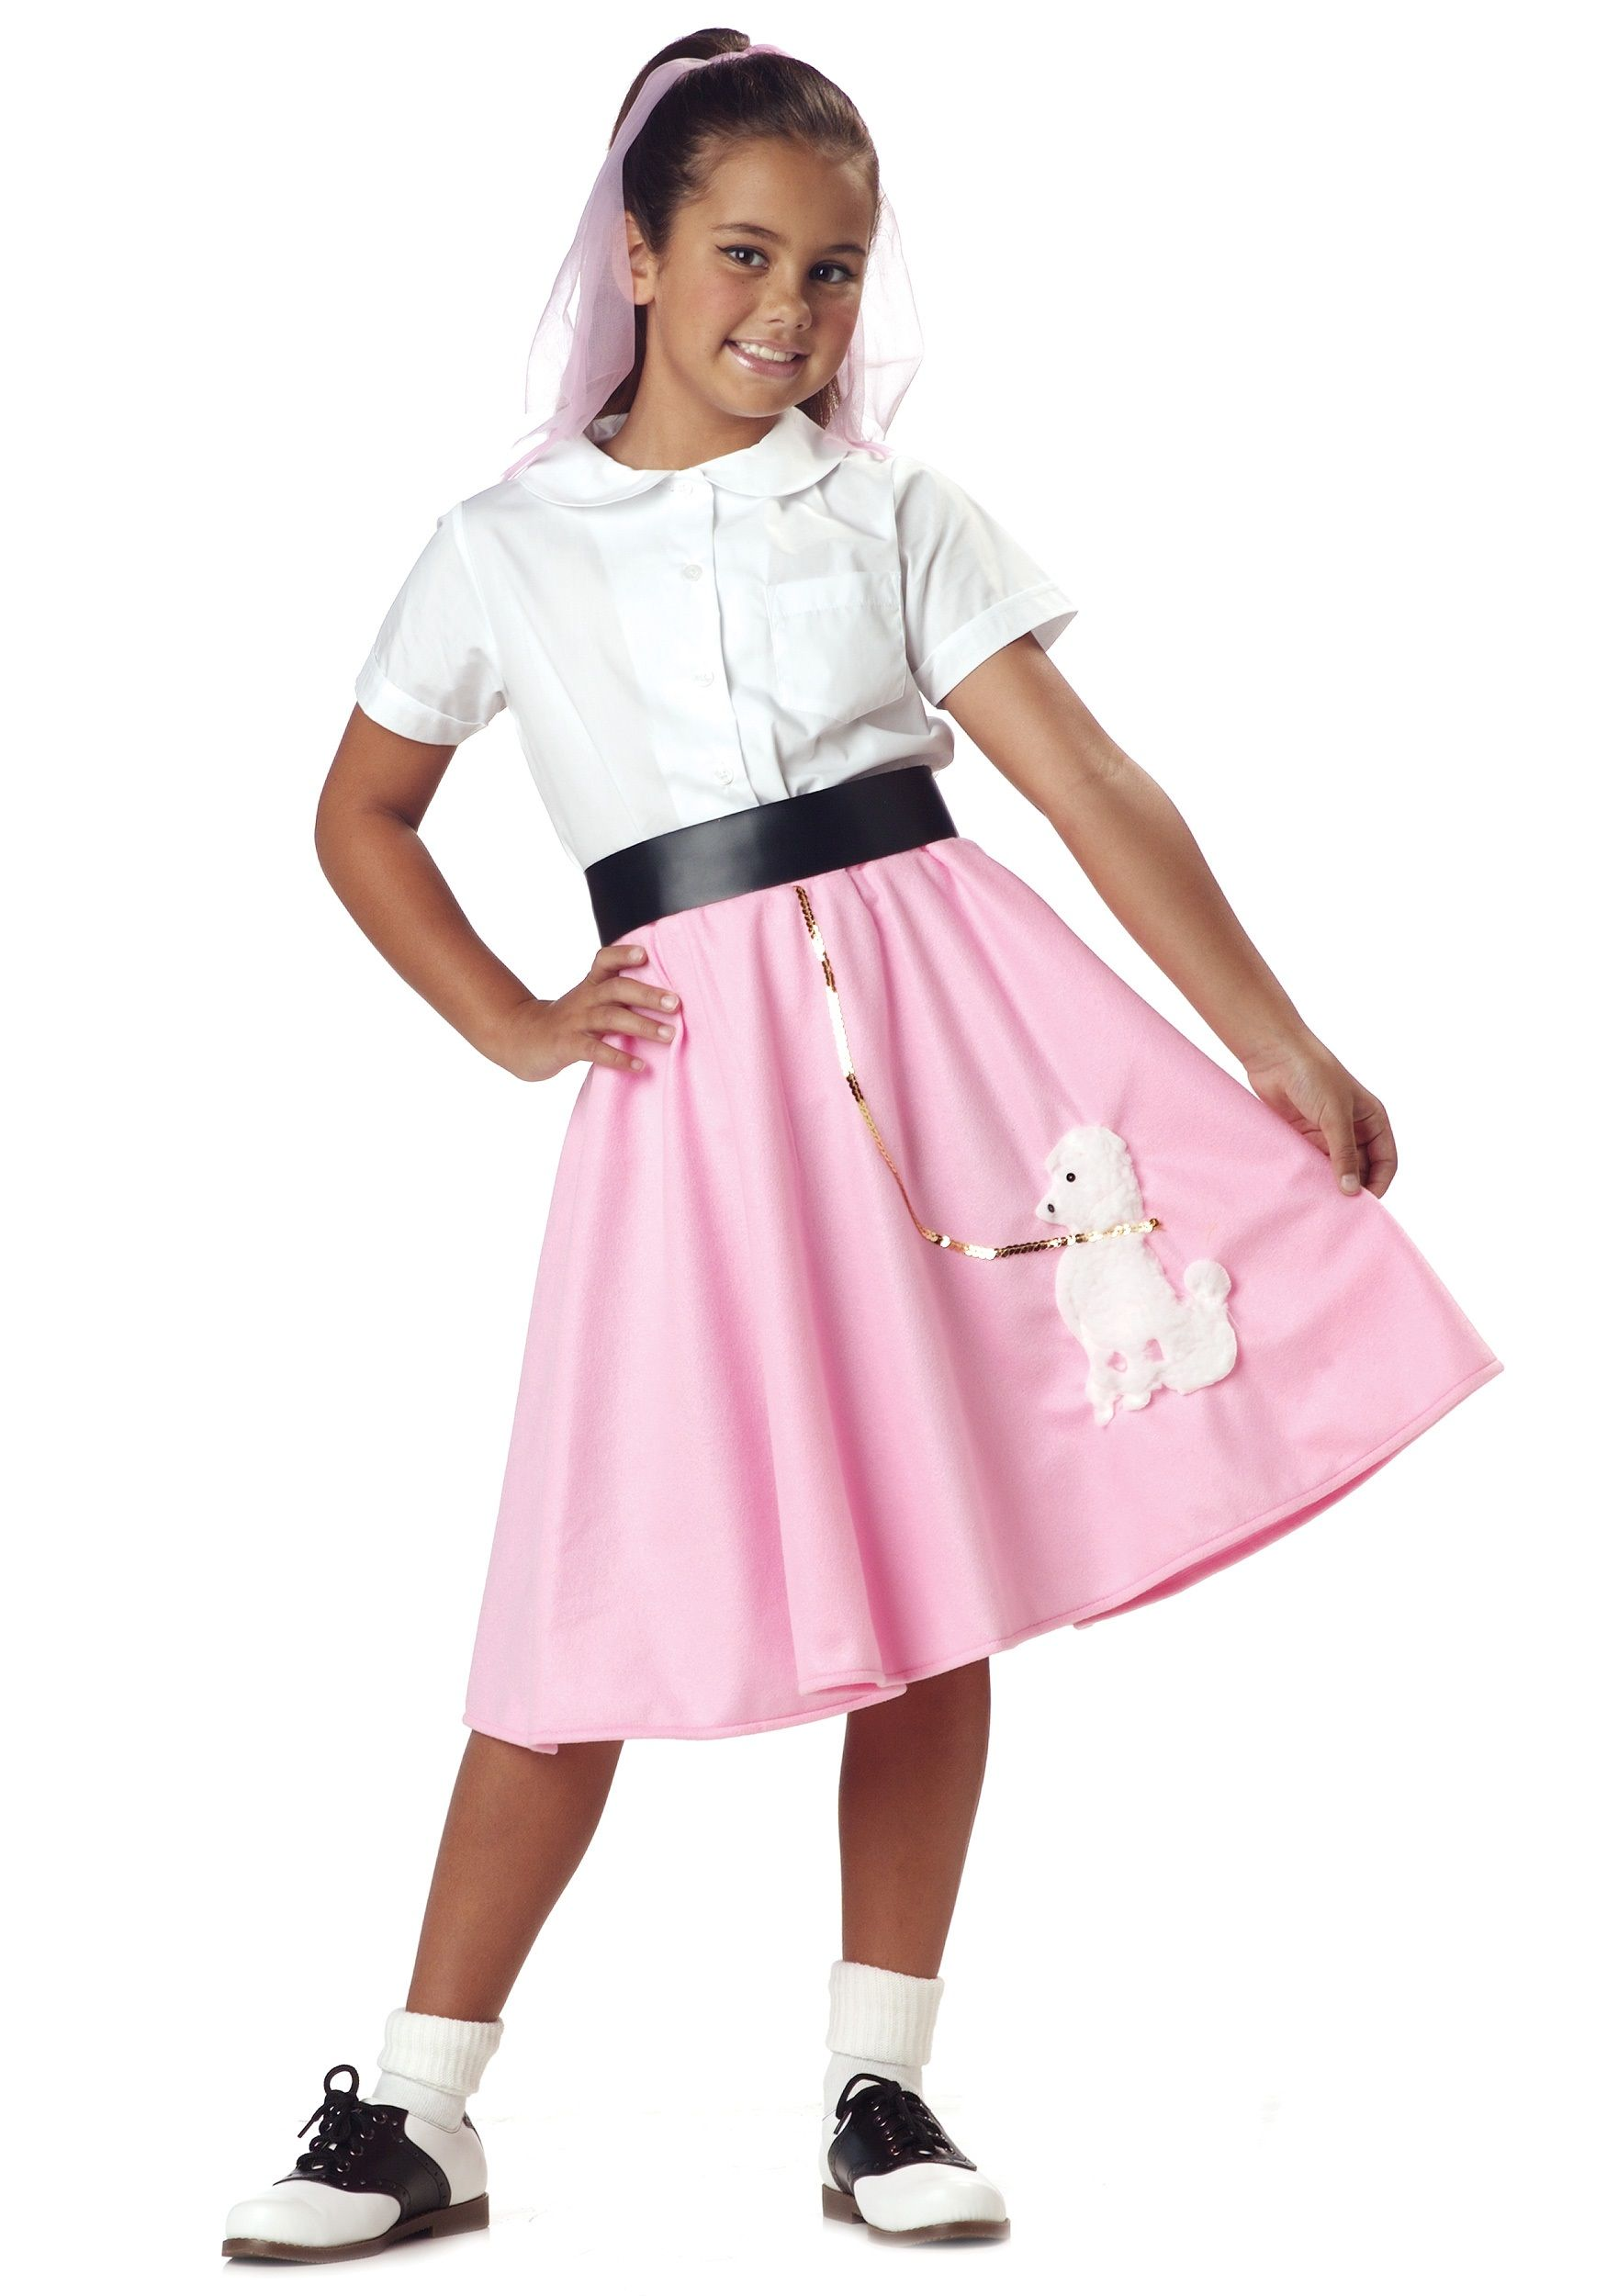 Girls Costumes - This Girls 50u0027s Pink Poodle Costume Skirt features a delicate pink body and  sc 1 st  Pinterest & Girls Costumes - This Girls 50u0027s Pink Poodle Costume Skirt features ...